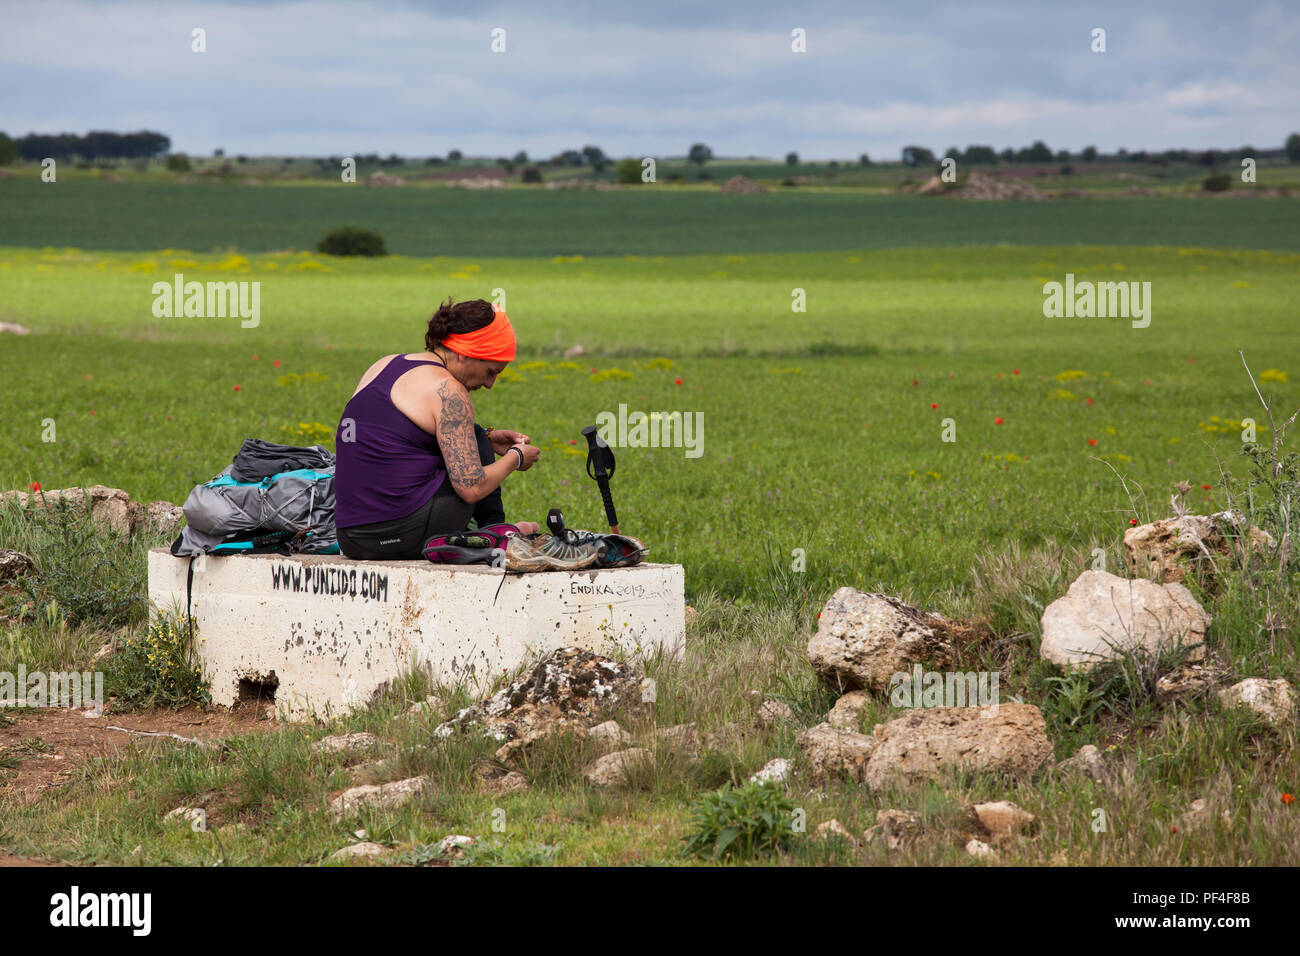 Woman pilgrim taking a rest while walking alone on the Camino de Santiago the way of St James near the village of Hontanas Burgos Spain - Stock Image